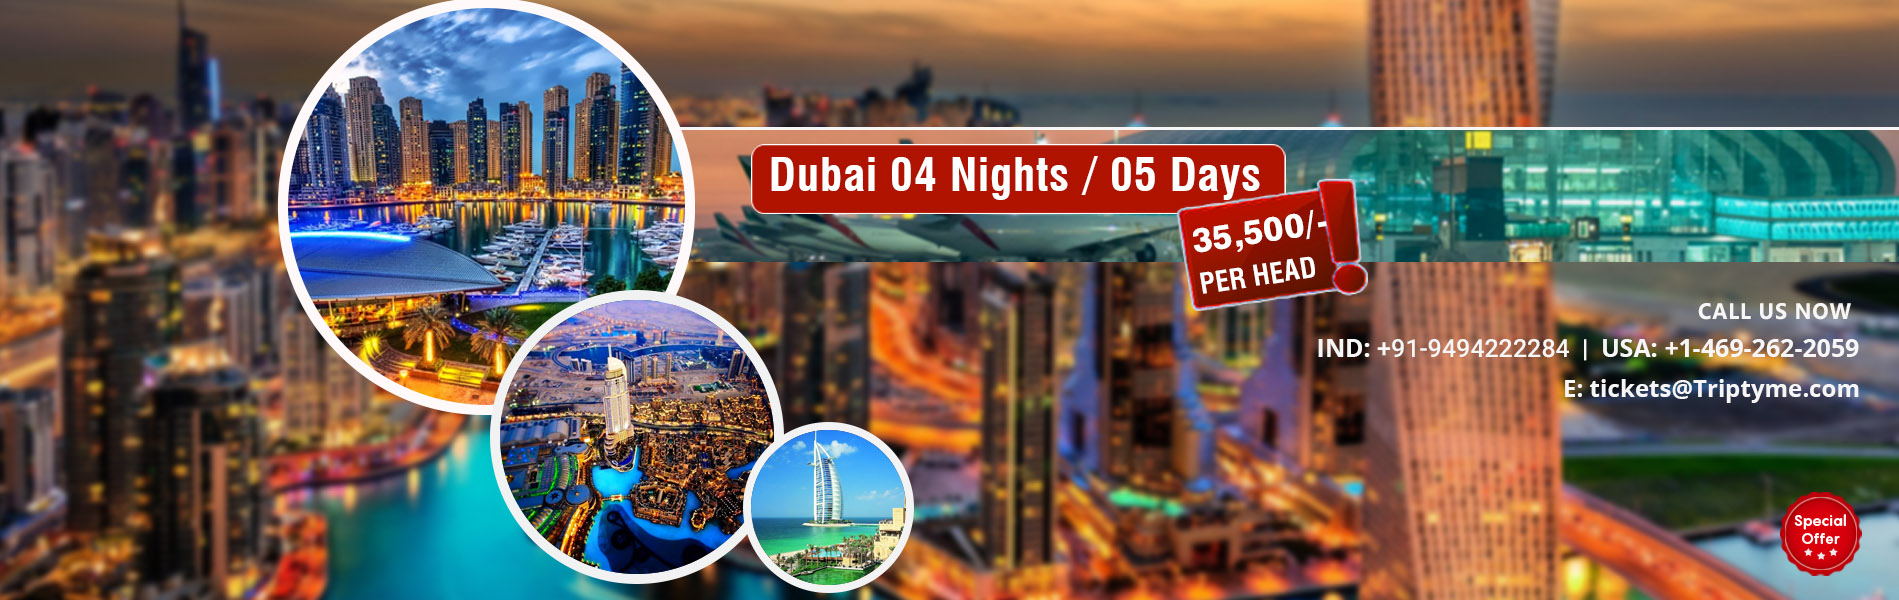 dubai-travel-package-triptyme